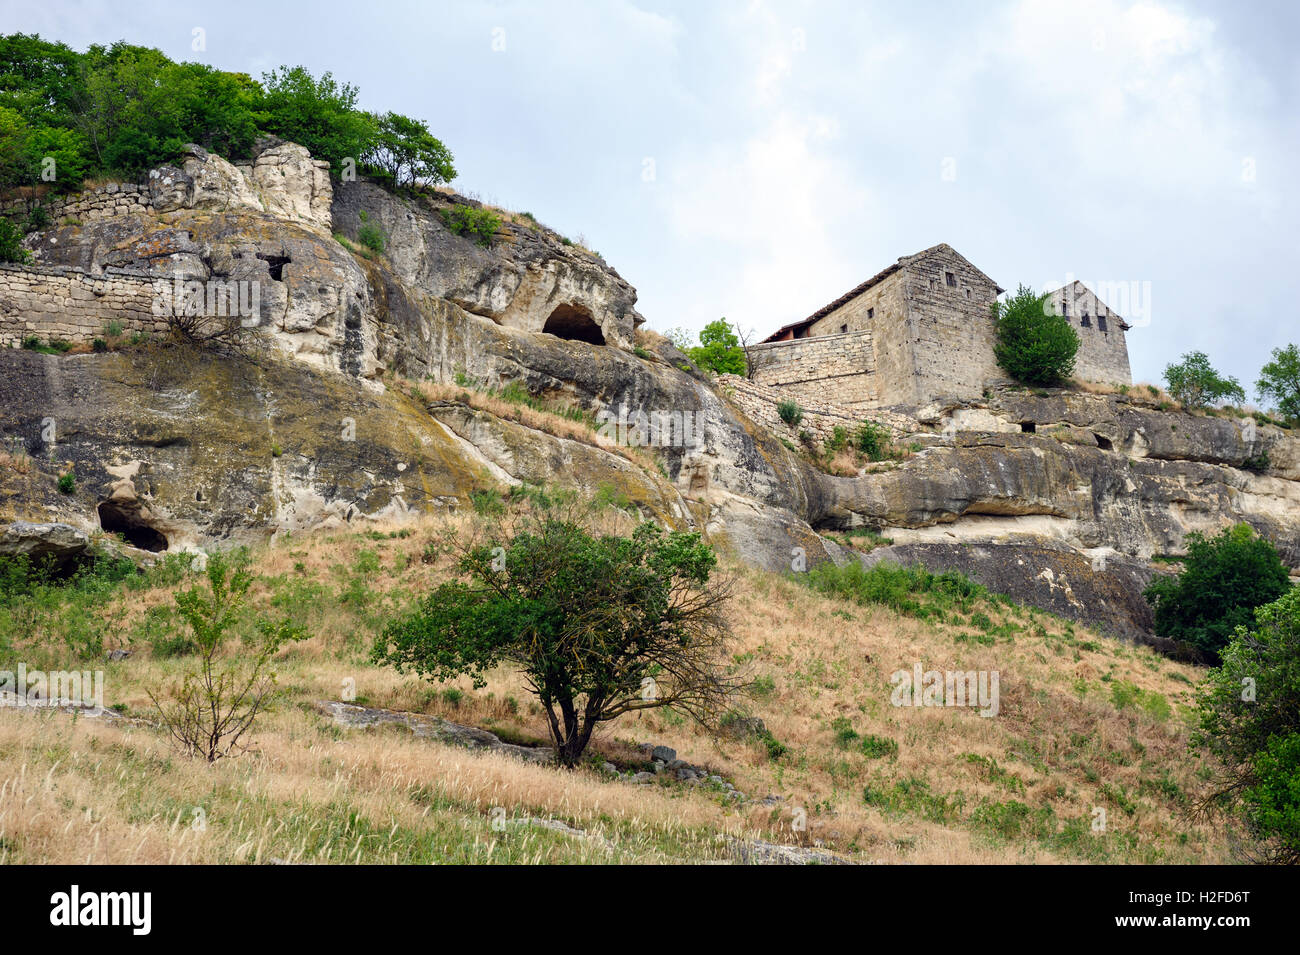 Chufut-Kale, medieval mountain city - Stock Image